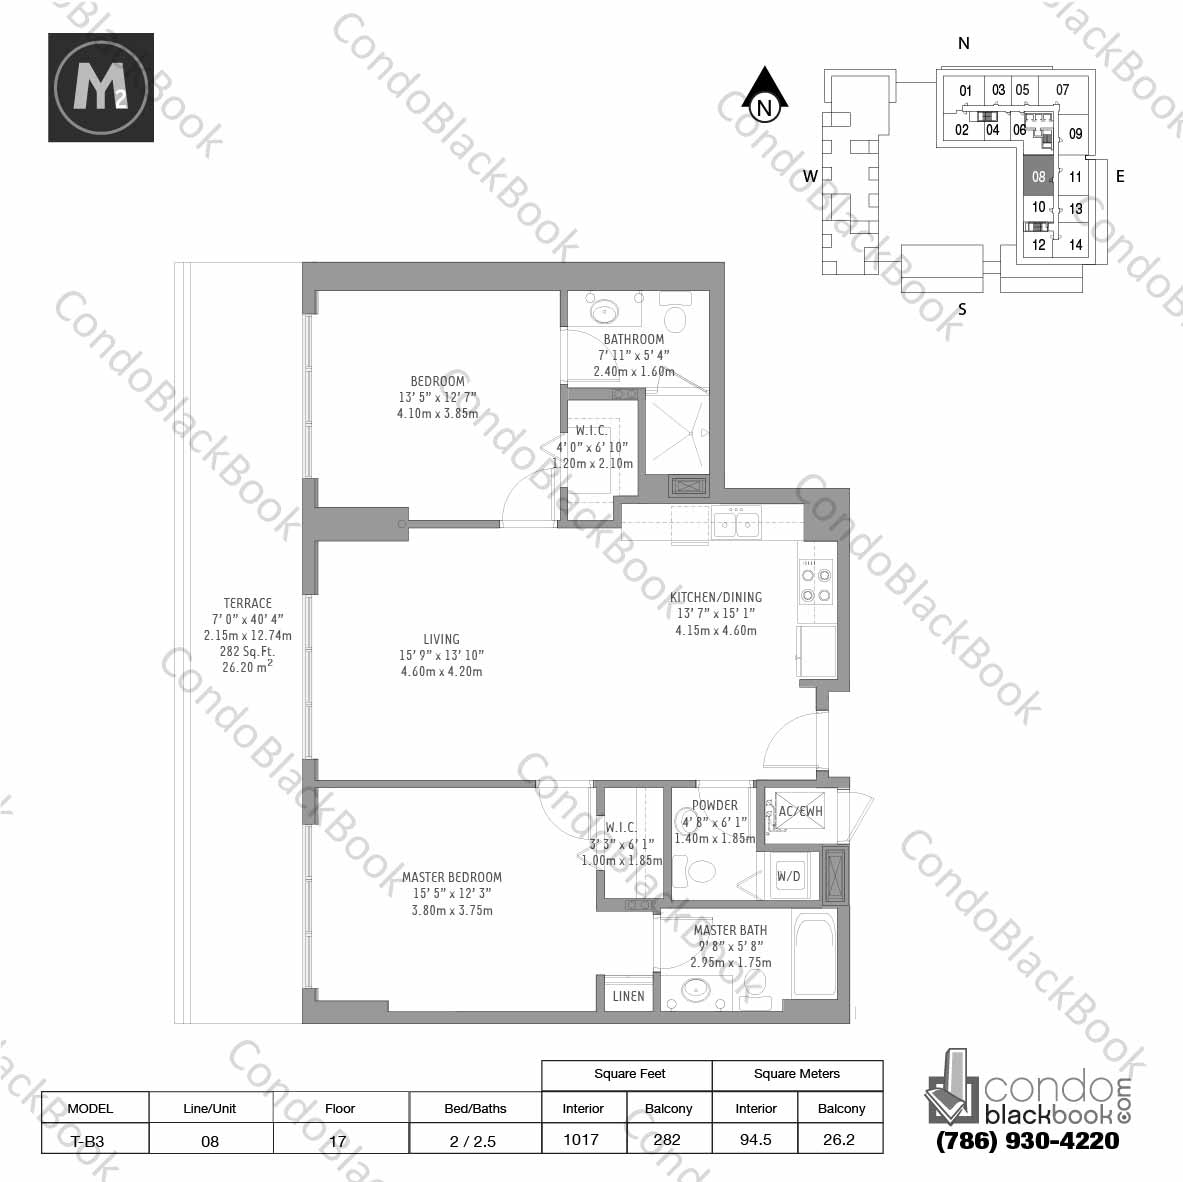 Floor plan for Midtown 2 Midtown Miami, model T-B3, line 08, 2 / 2.5 bedrooms, 1017 sq ft